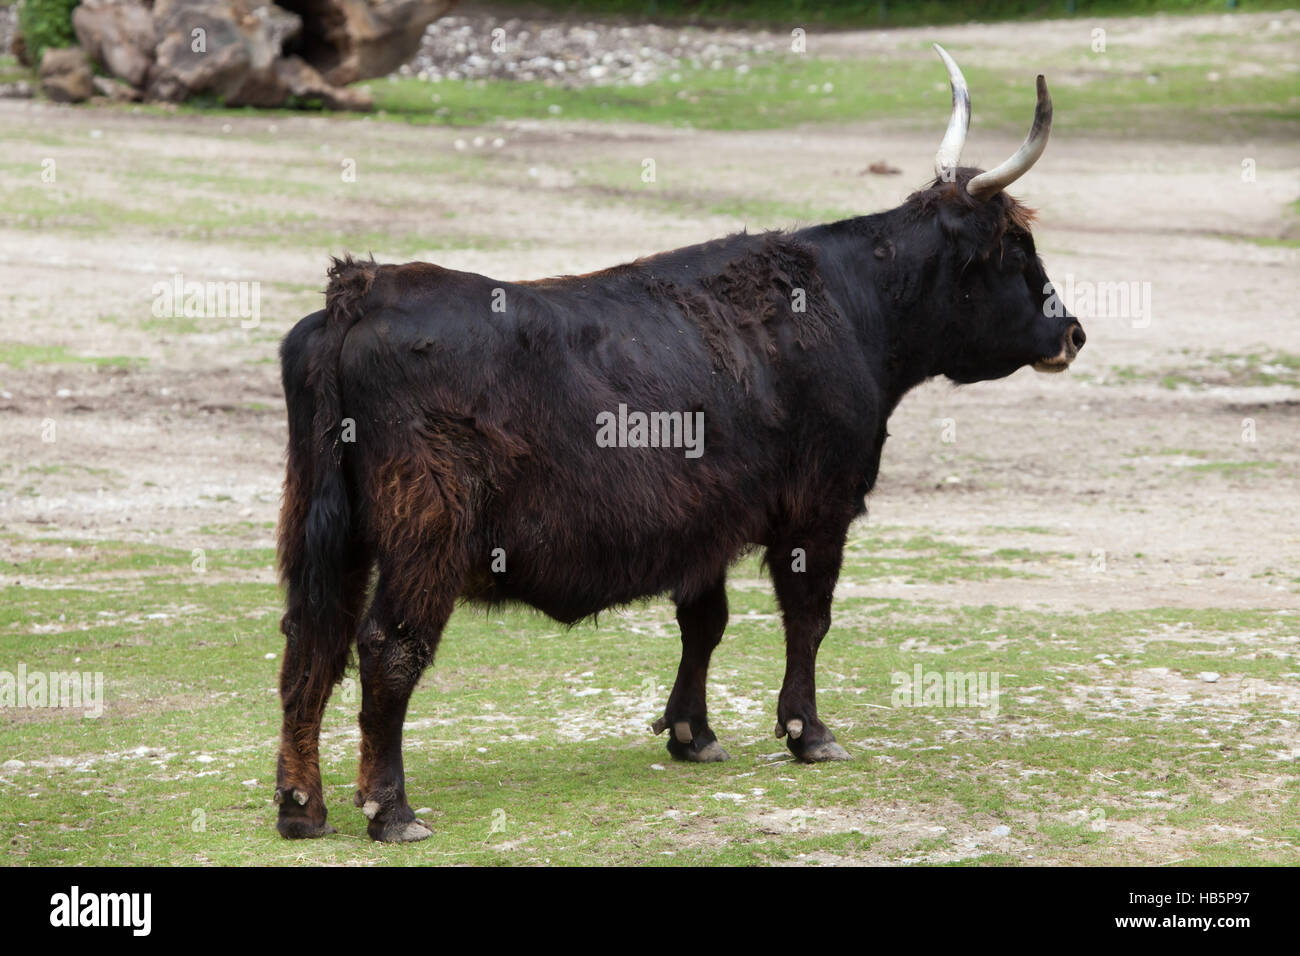 Heck cattle (Bos primigenius taurus), claimed to resemble the extinct aurochs at Hellabrunn Zoo in Munich, Bavaria, - Stock Image